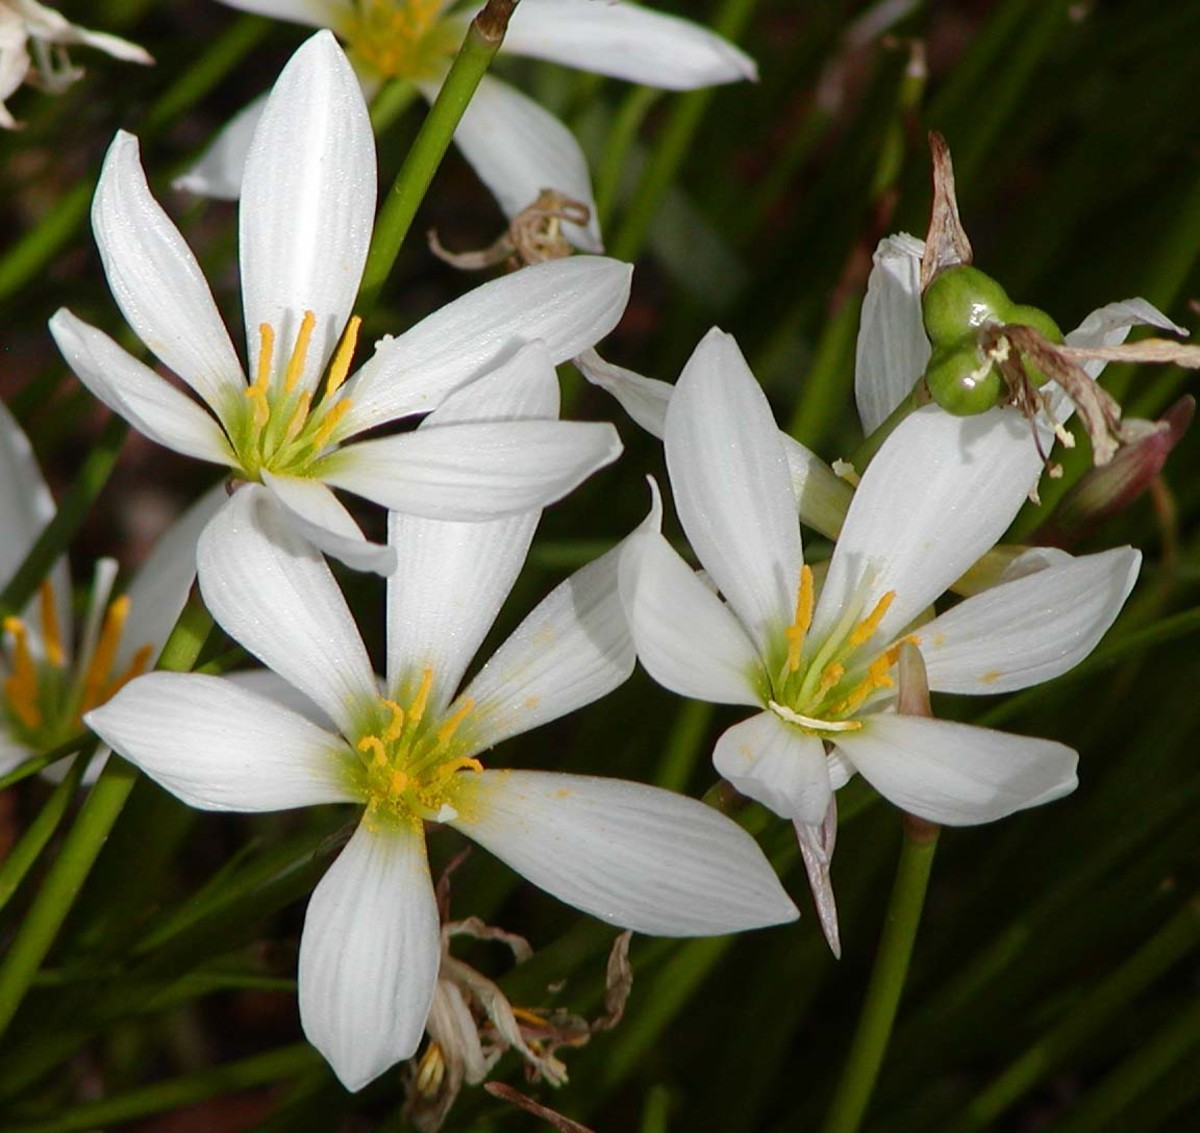 Zephyranthes is also called rain flower and fairy lily.